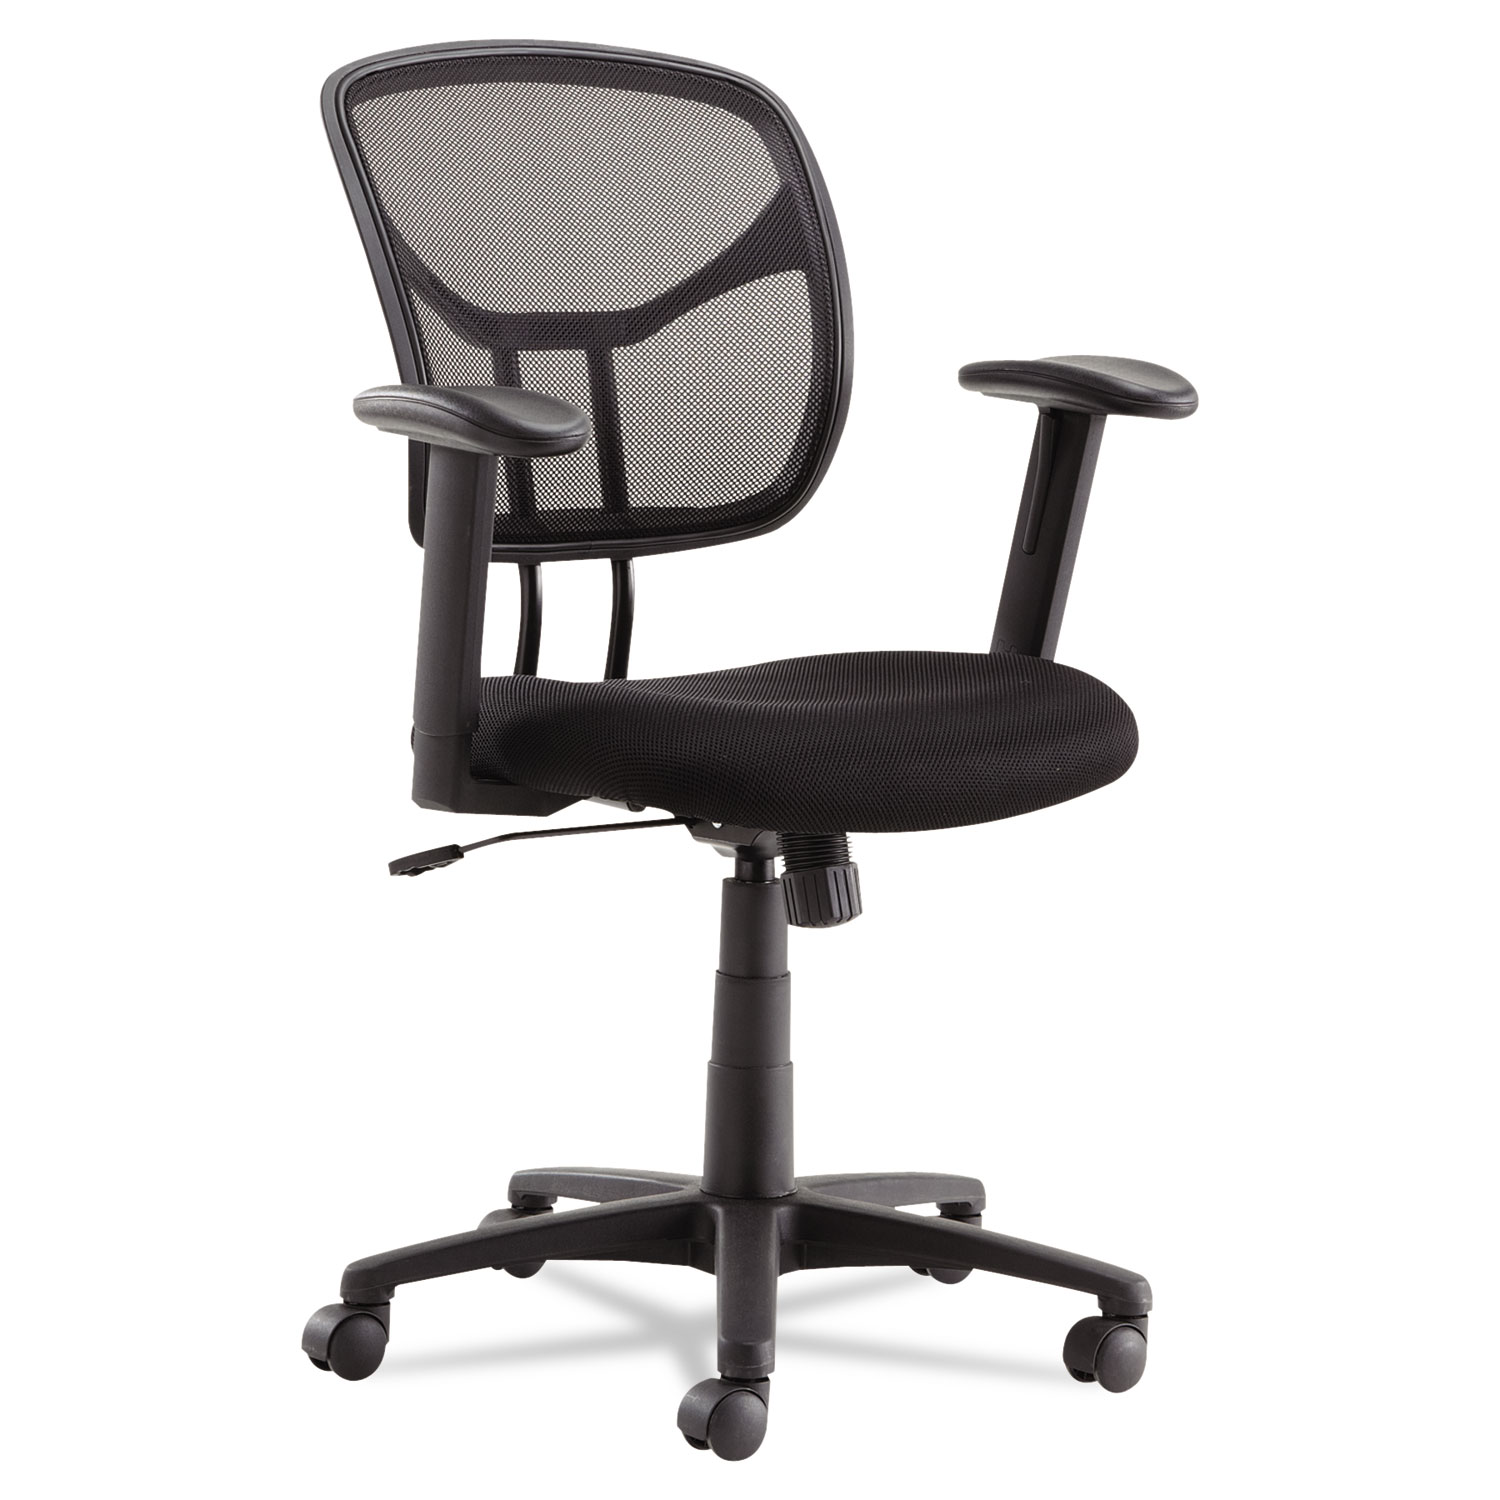 Back Supports For Chairs Swivel Tilt Mesh Task Chair With Adjustable Arms Supports Up To 250 Lbs Black Seat Black Back Black Base